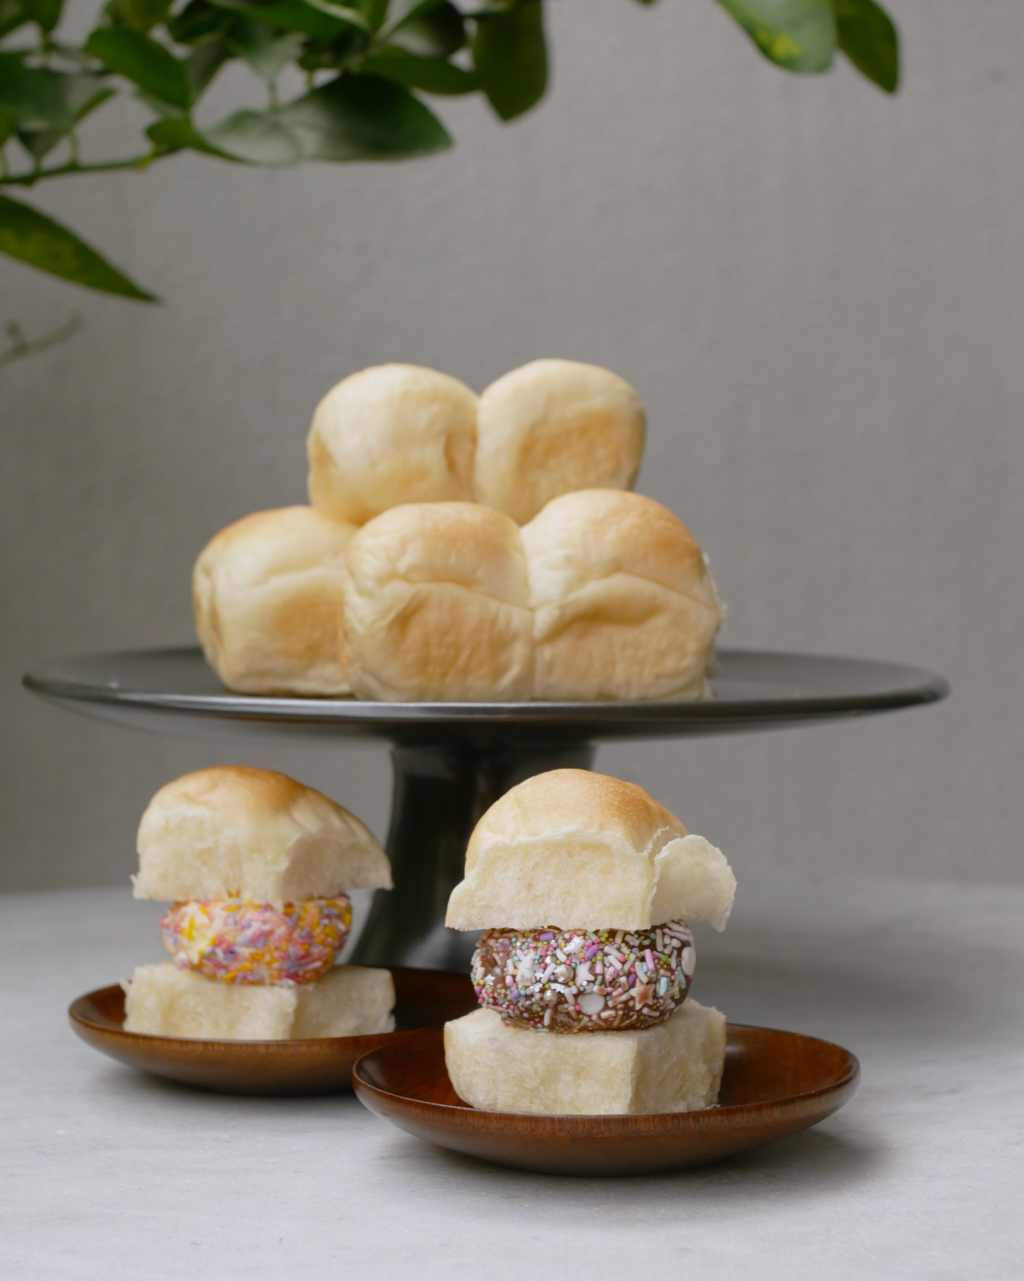 Fluffy Asian style pull apart buns